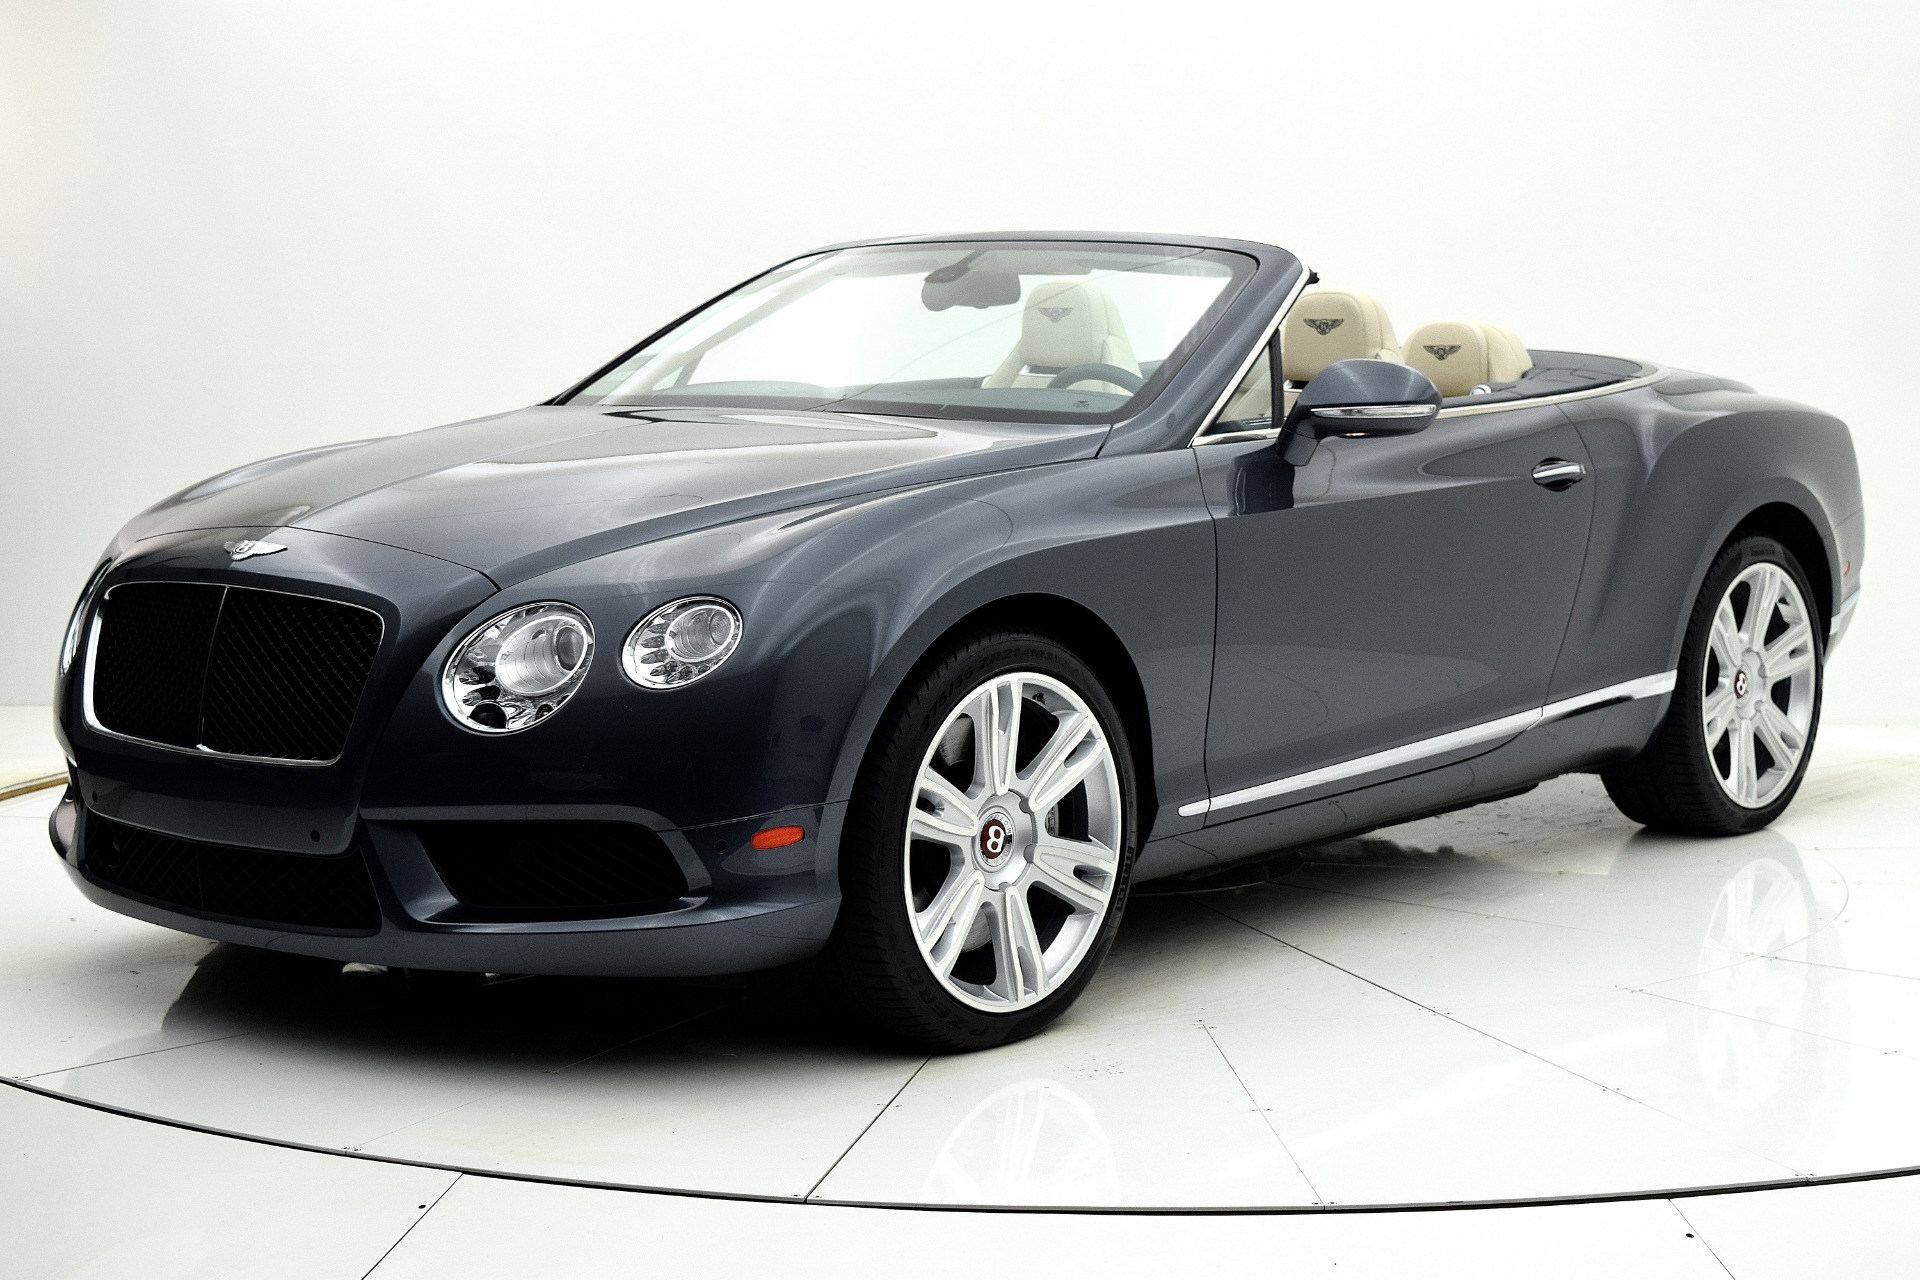 Used 2013 Bentley Continental GT V8 Convertible for sale Sold at F.C. Kerbeck Aston Martin in Palmyra NJ 08065 2